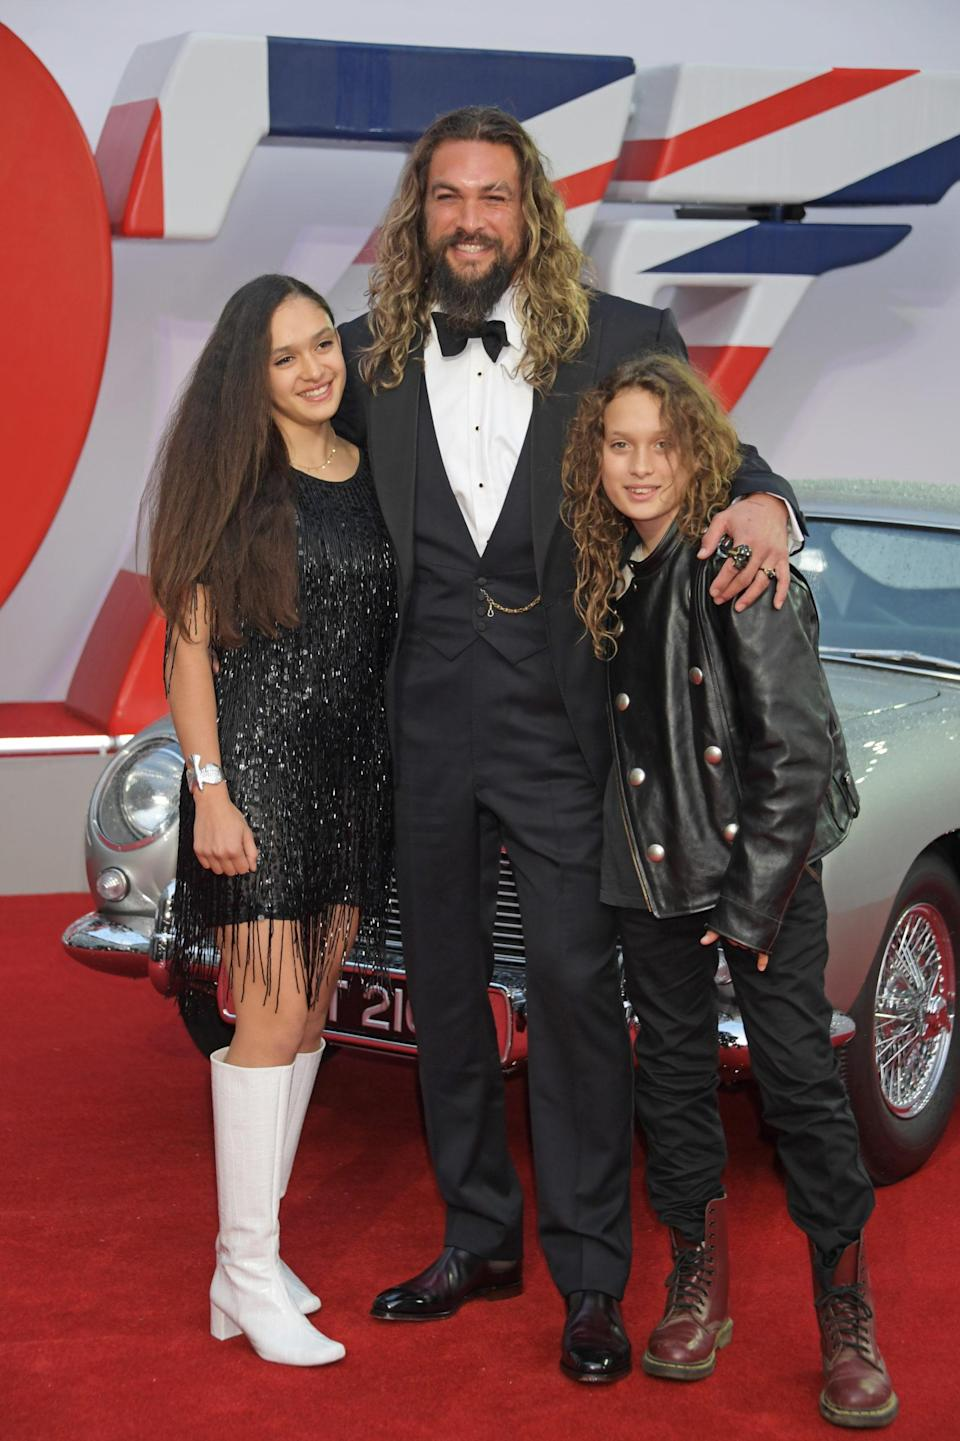 """LONDON, ENGLAND – SEPTEMBER 28: (L to R) Lola Iolani Momoa, Jason Momoa and Nakoa-Wolf Manakauapo Namakaeha Momoa attend the World Premiere of """"No Time To Die"""" at the Royal Albert Hall on September 28, 2021 in London, England. (Photo by David M. Benett/Dave Benett/Getty Images)"""